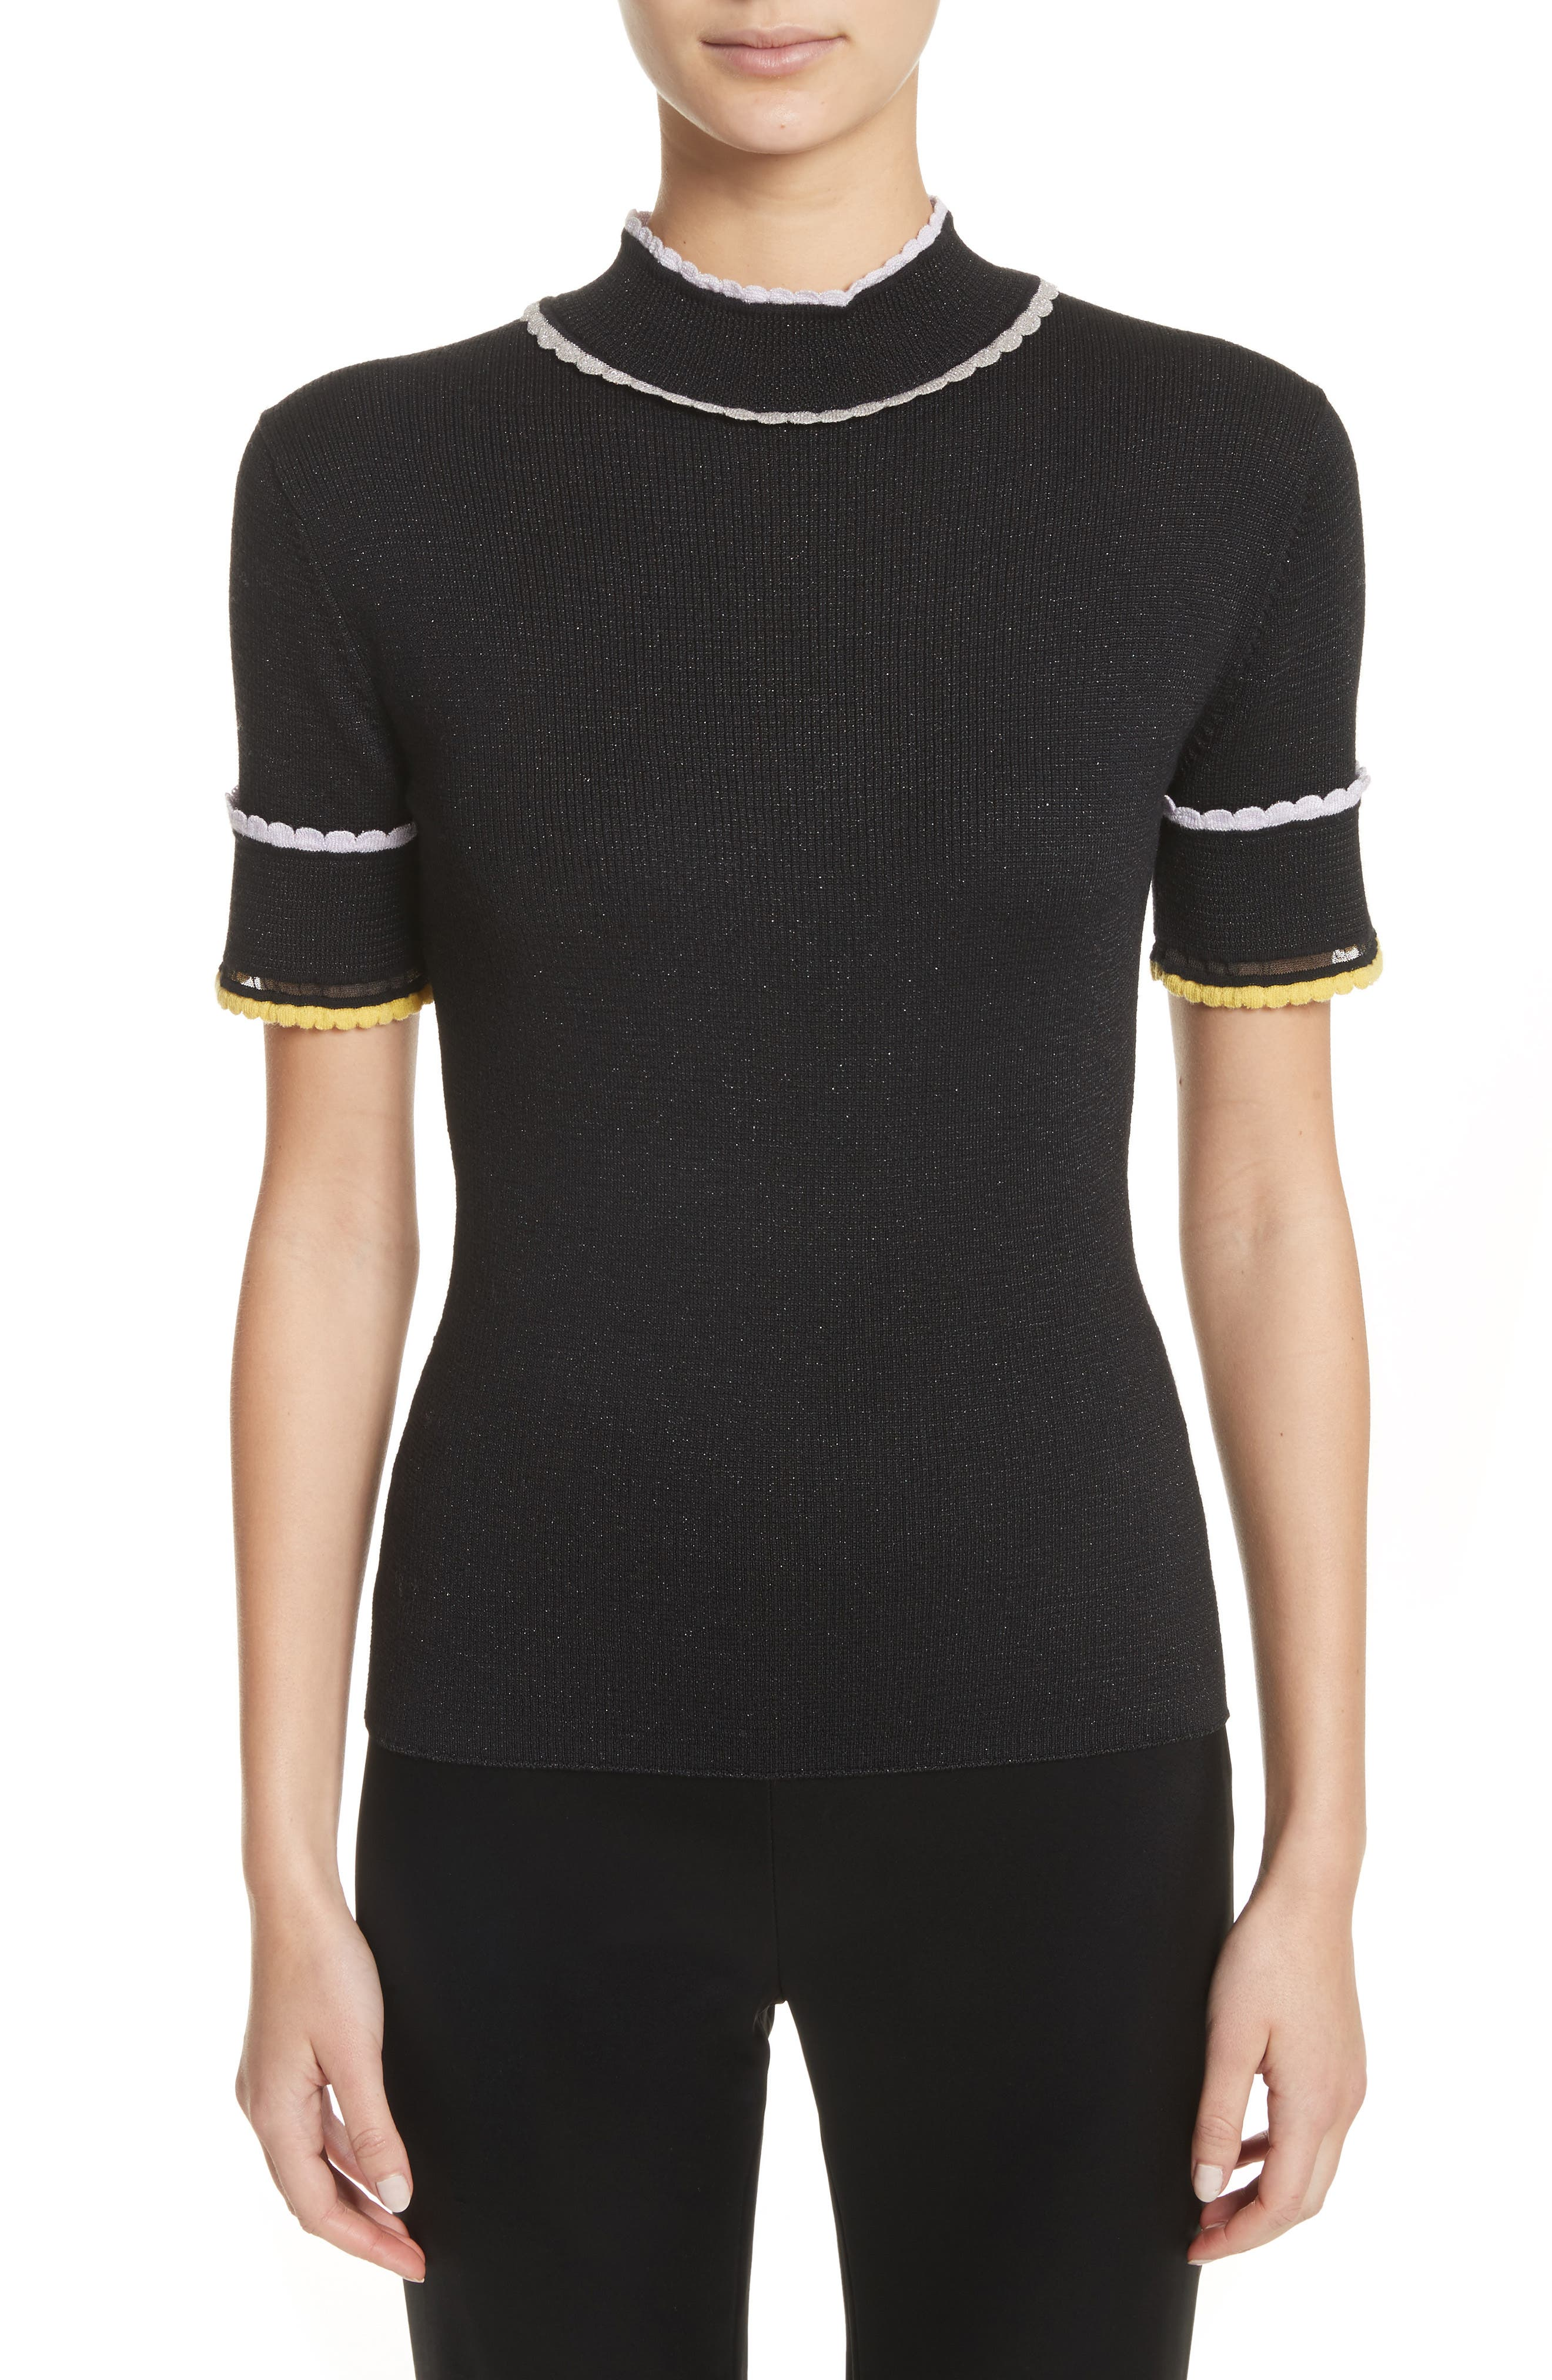 Alternate Image 1 Selected - St. John Collection Scallop Trim Knit Top